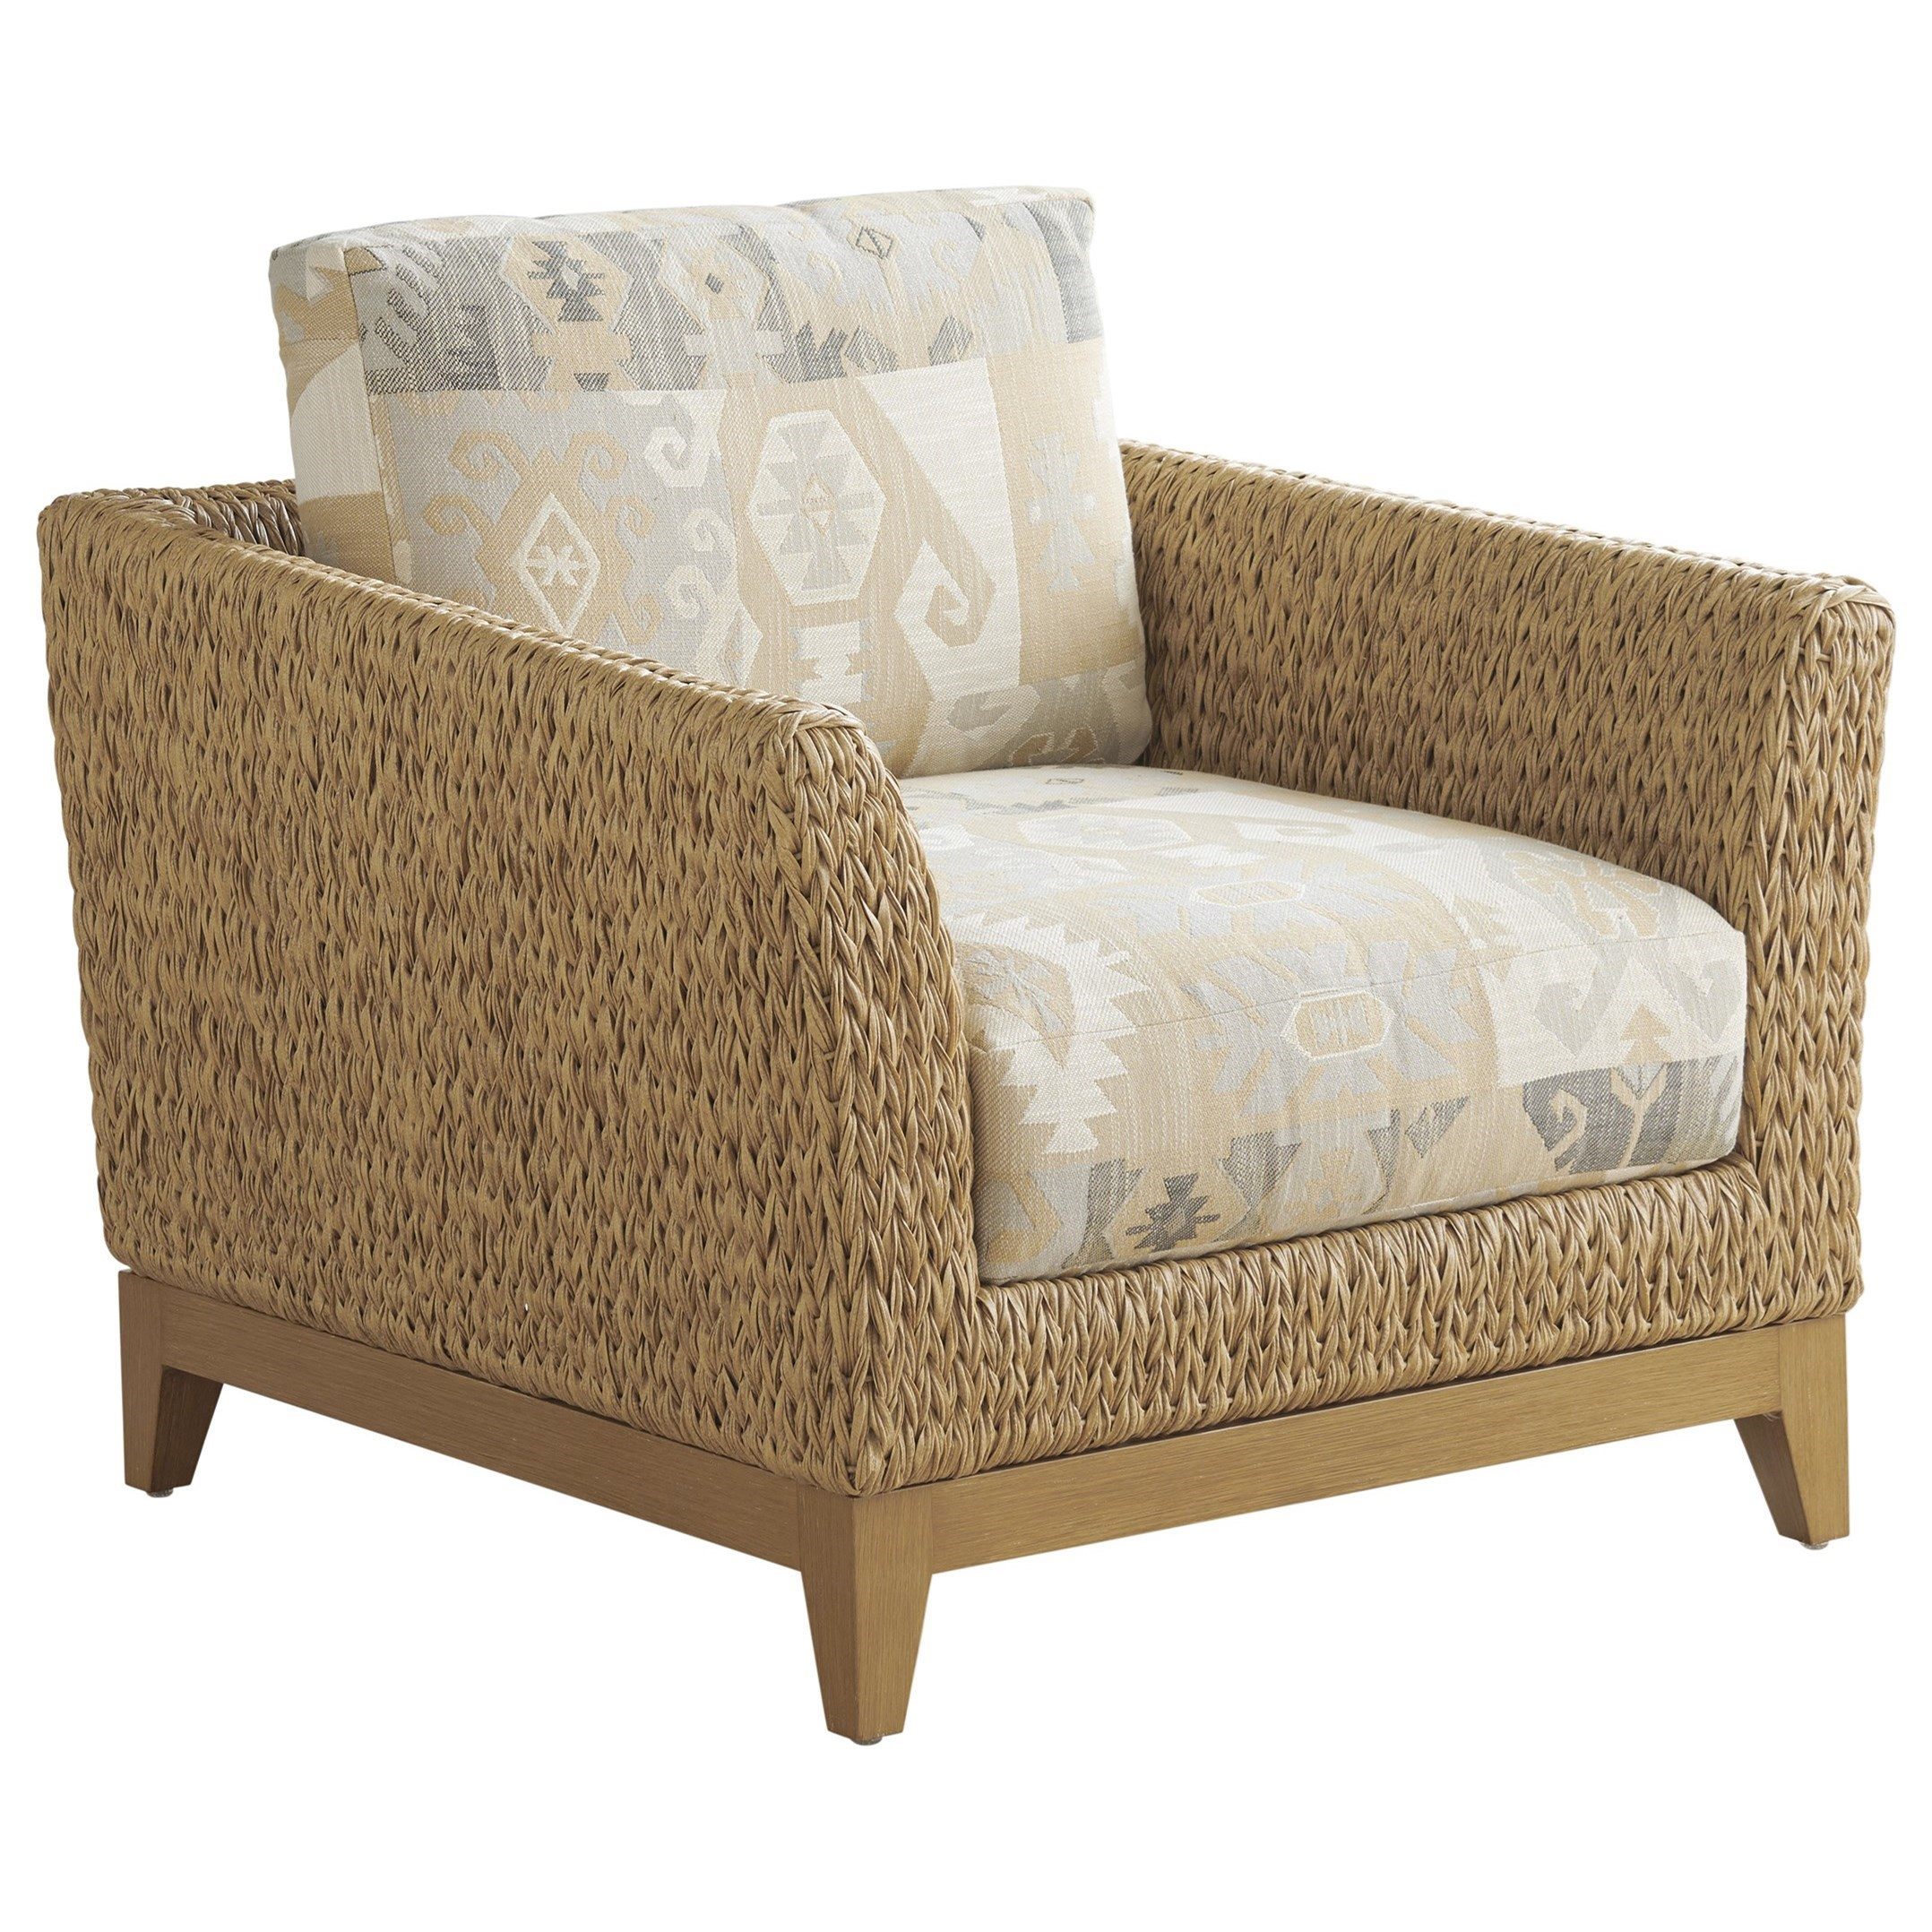 Los Altos Valley View Lounge Chair by Tommy Bahama Outdoor Living at Baer's Furniture